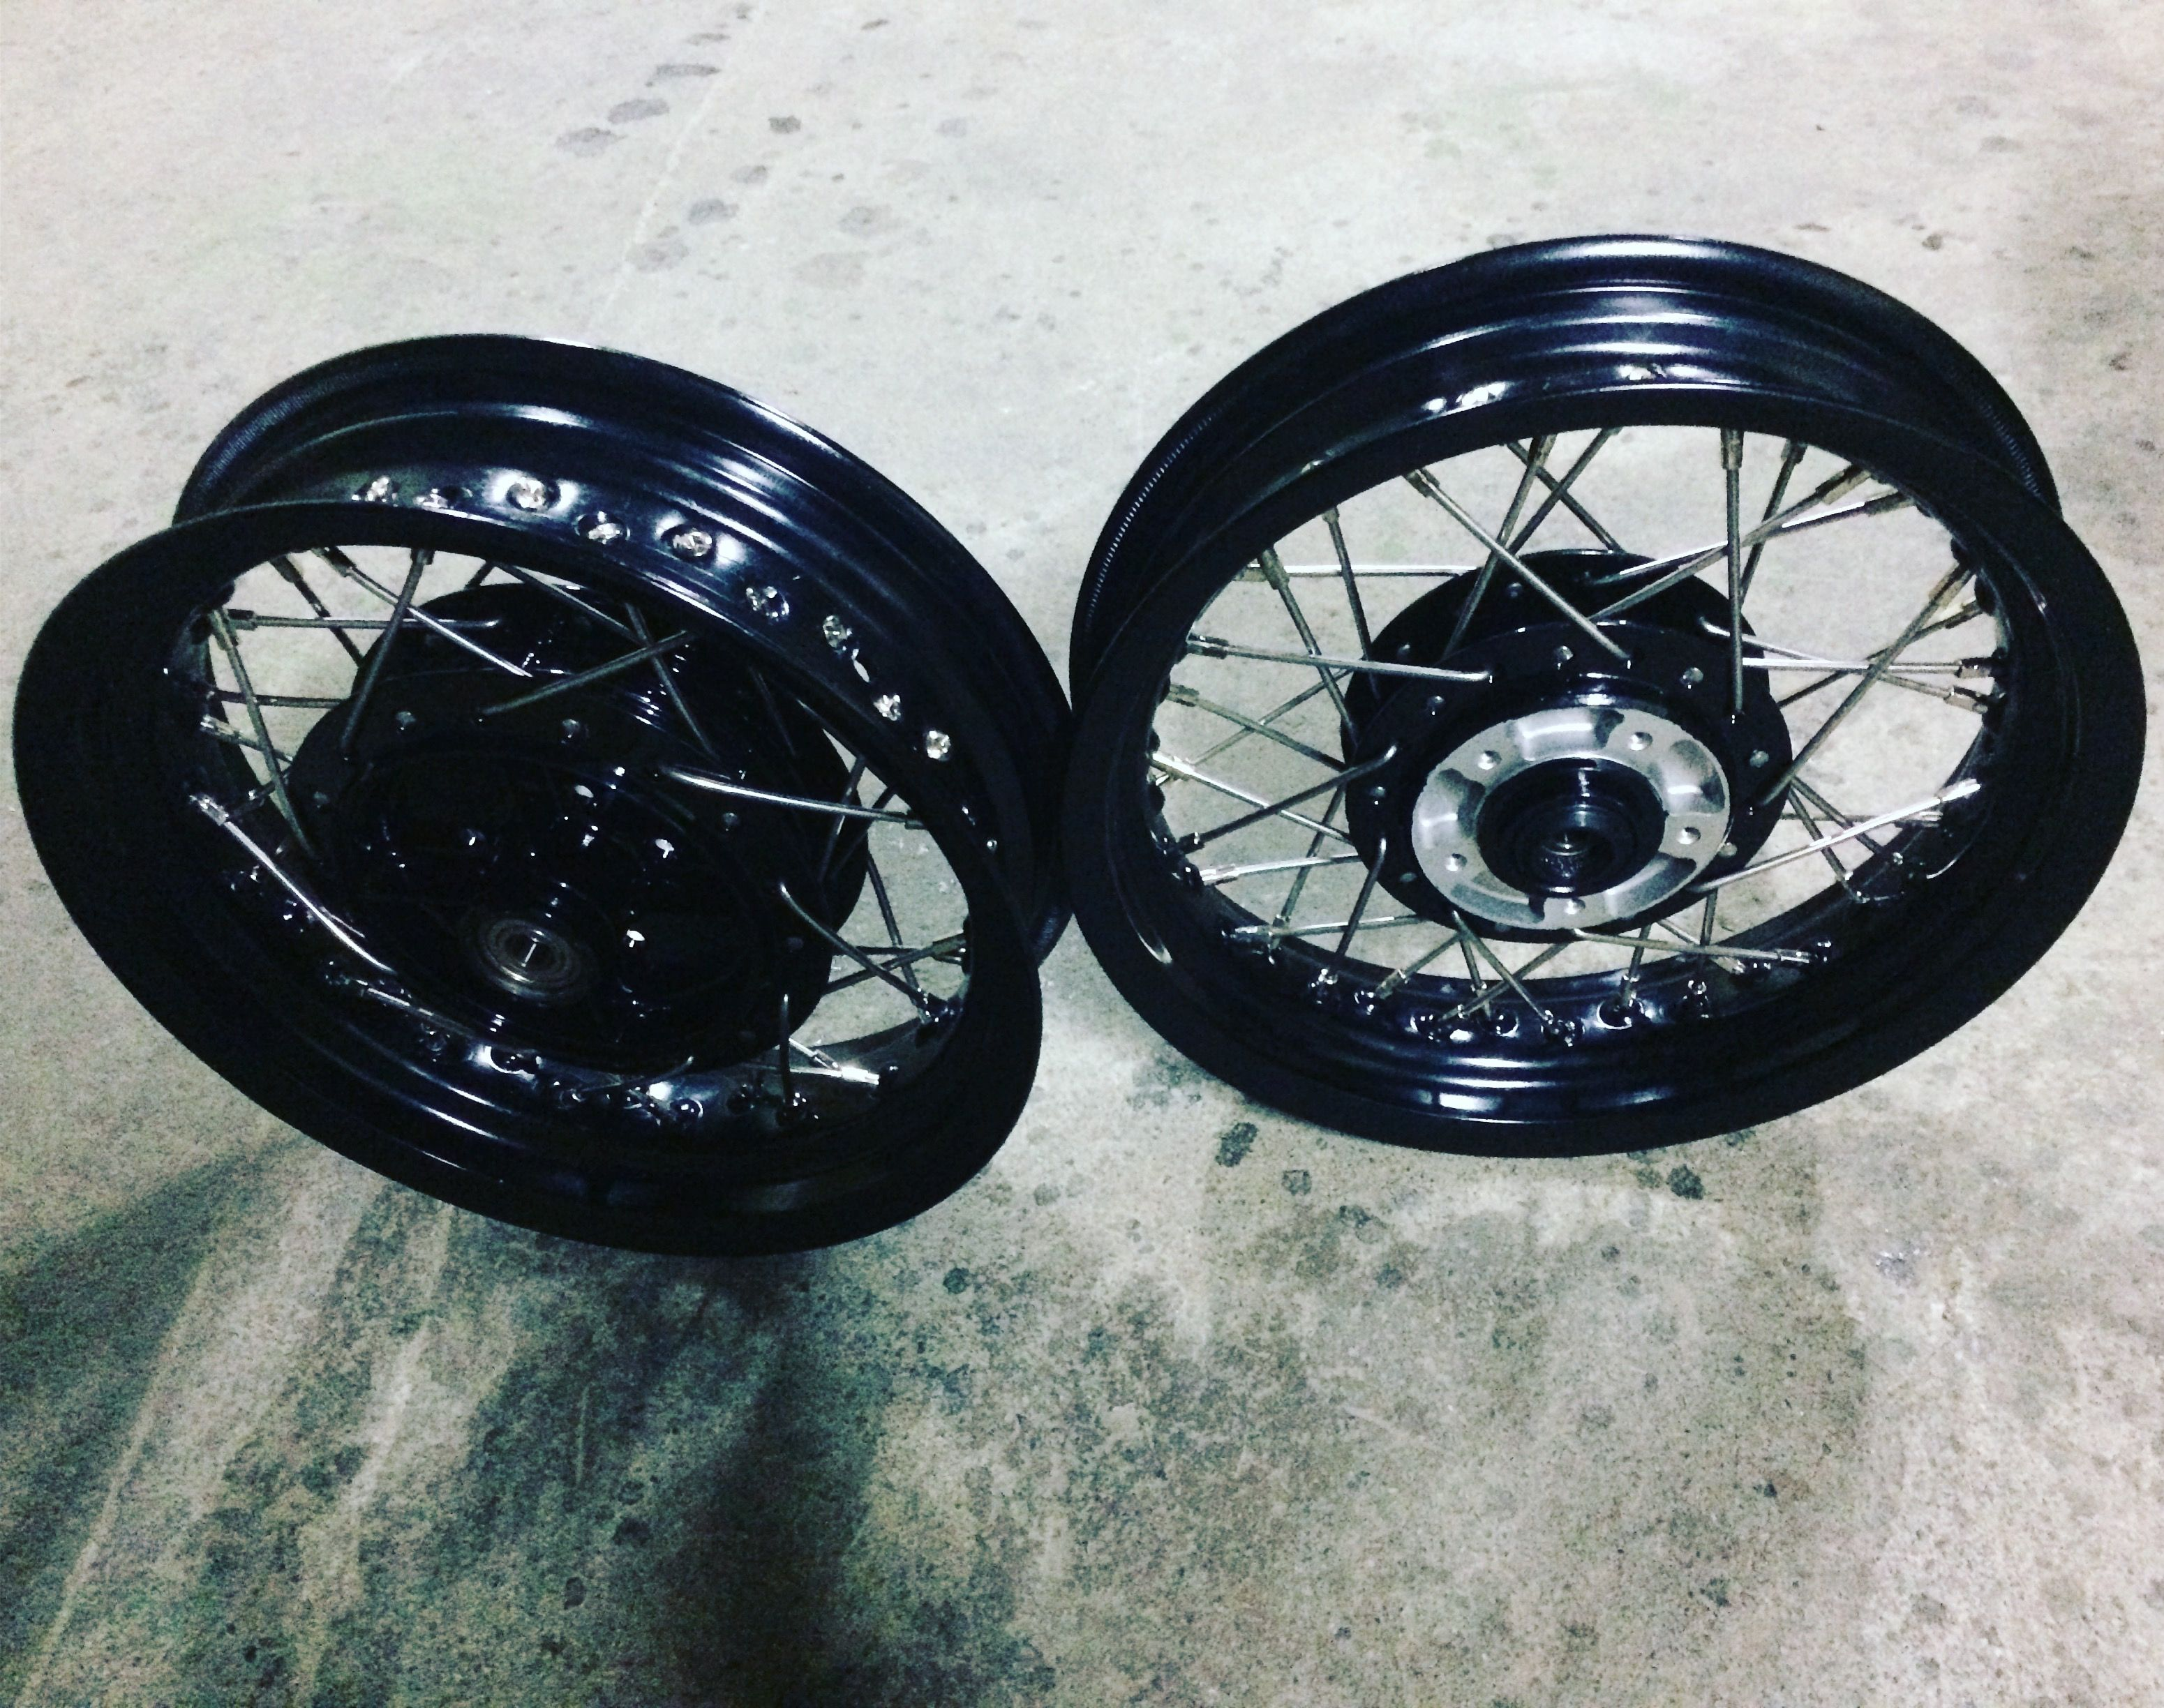 The Black Color Rim Is 12 Inches We Can Produce The Shortest Spoke Via Machines The Stainless Spoke Is 91mm And 101mm Motorcycle Color Rims Car Wheel Wheel